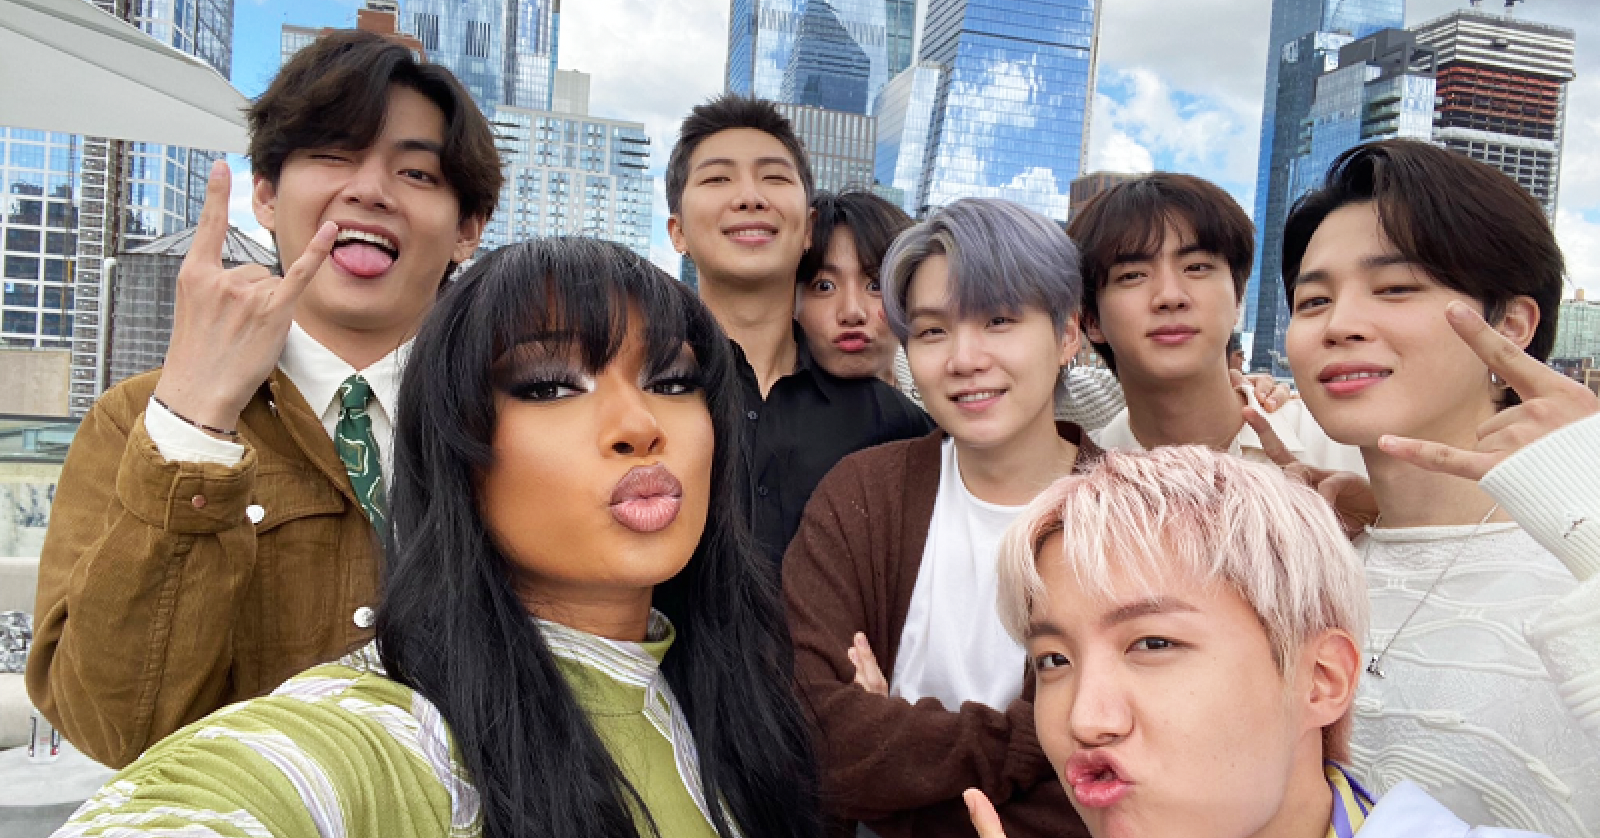 BTS Snaps Photos with 'Hot Girl Coach' Megan Thee Stallion in New York